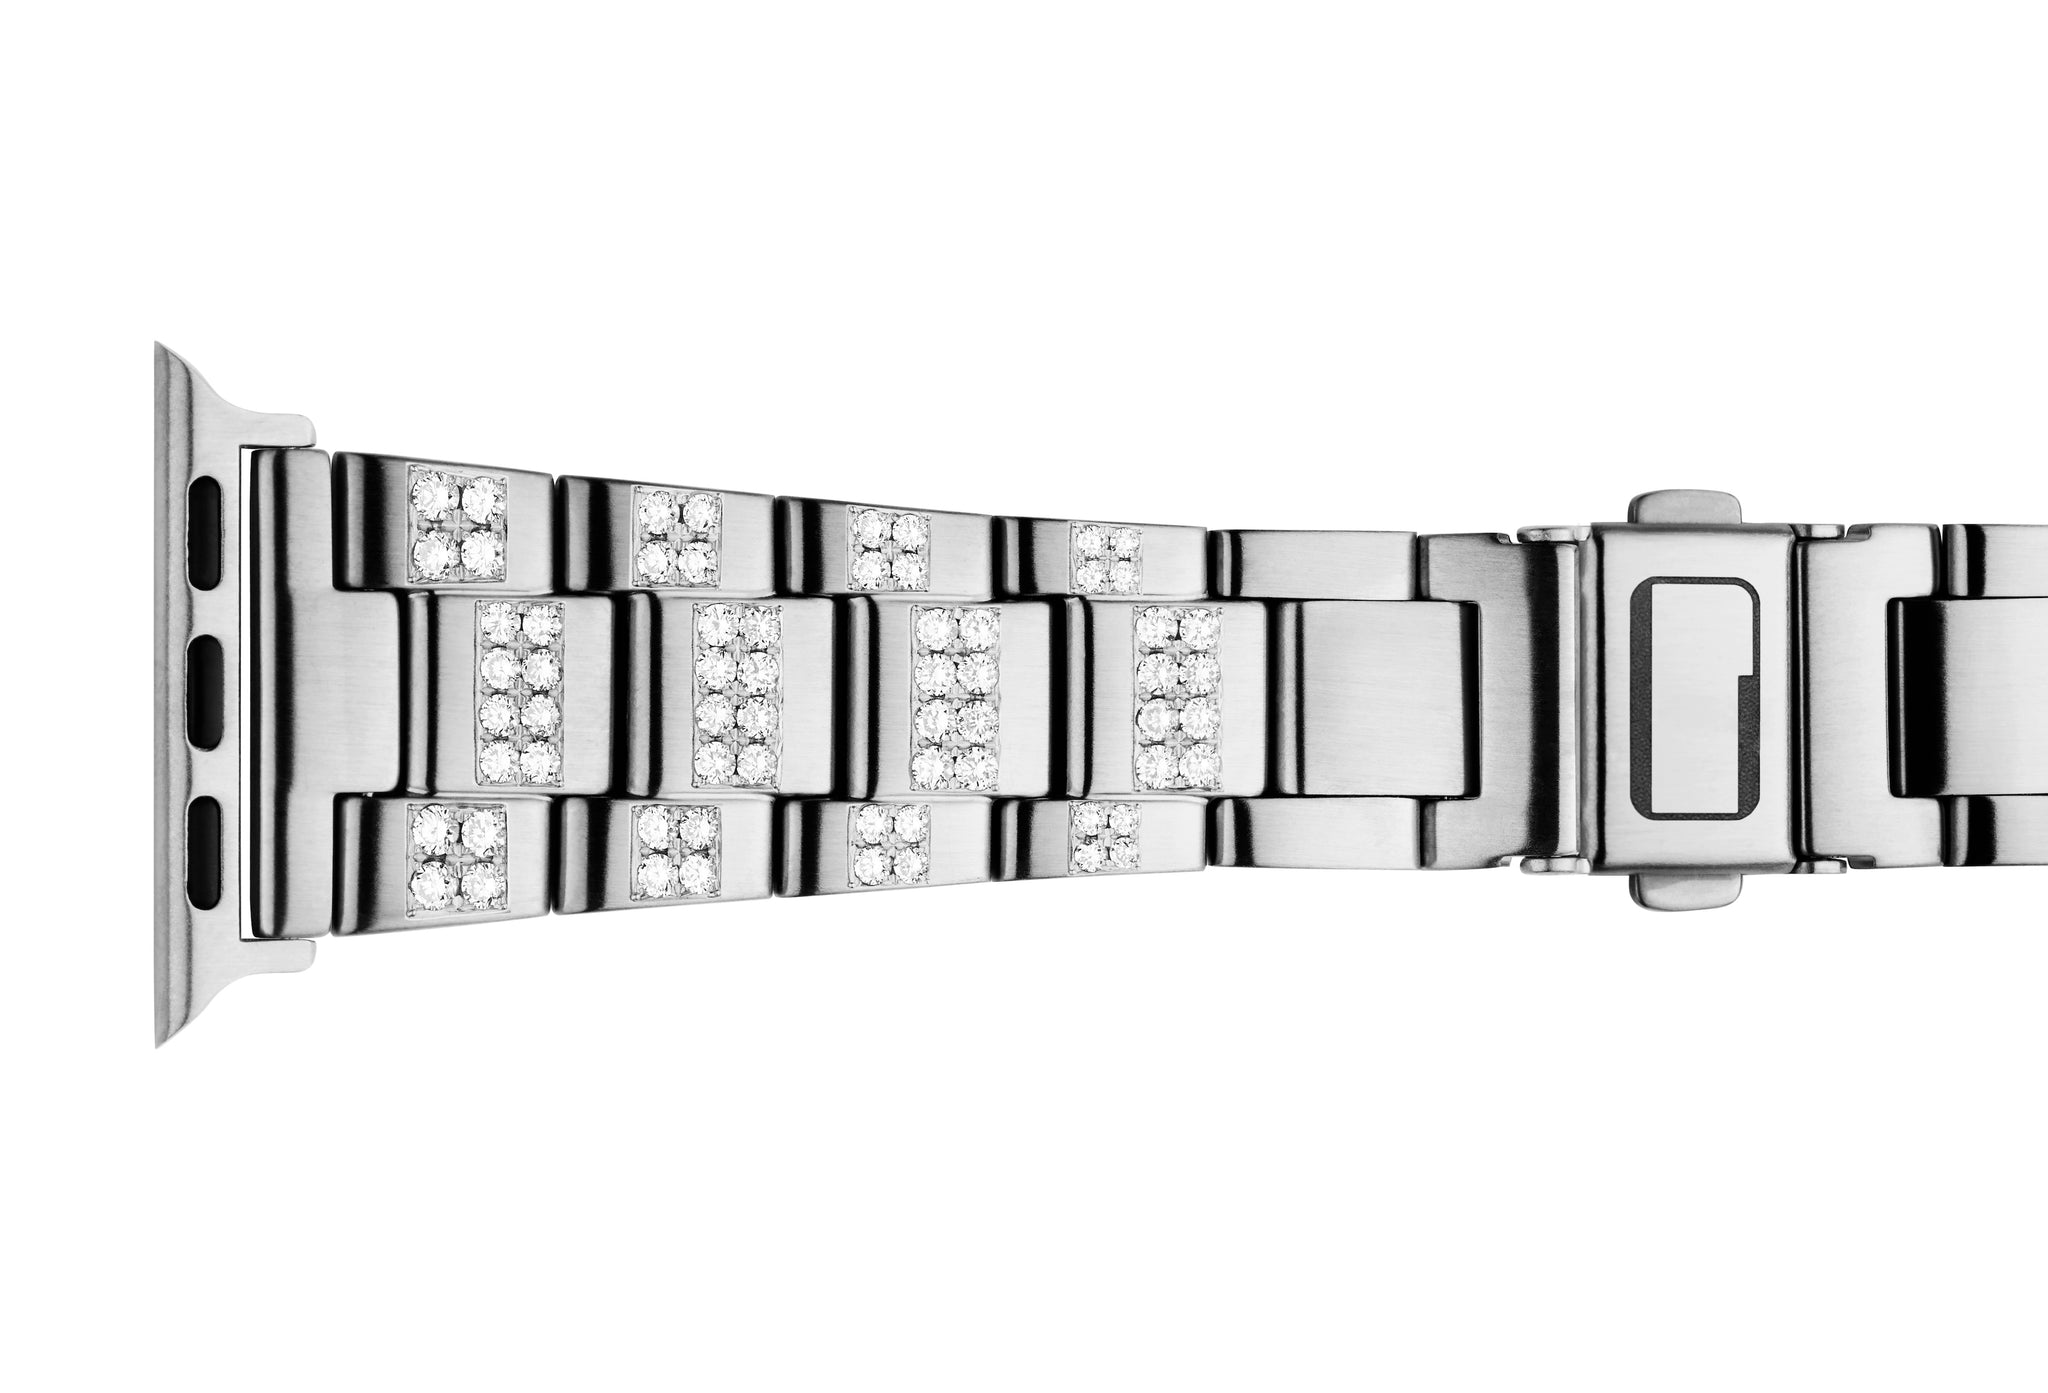 Luxury Power Bracelet (band) for Apple Watch. Crafted with ethical lab grown diamonds.